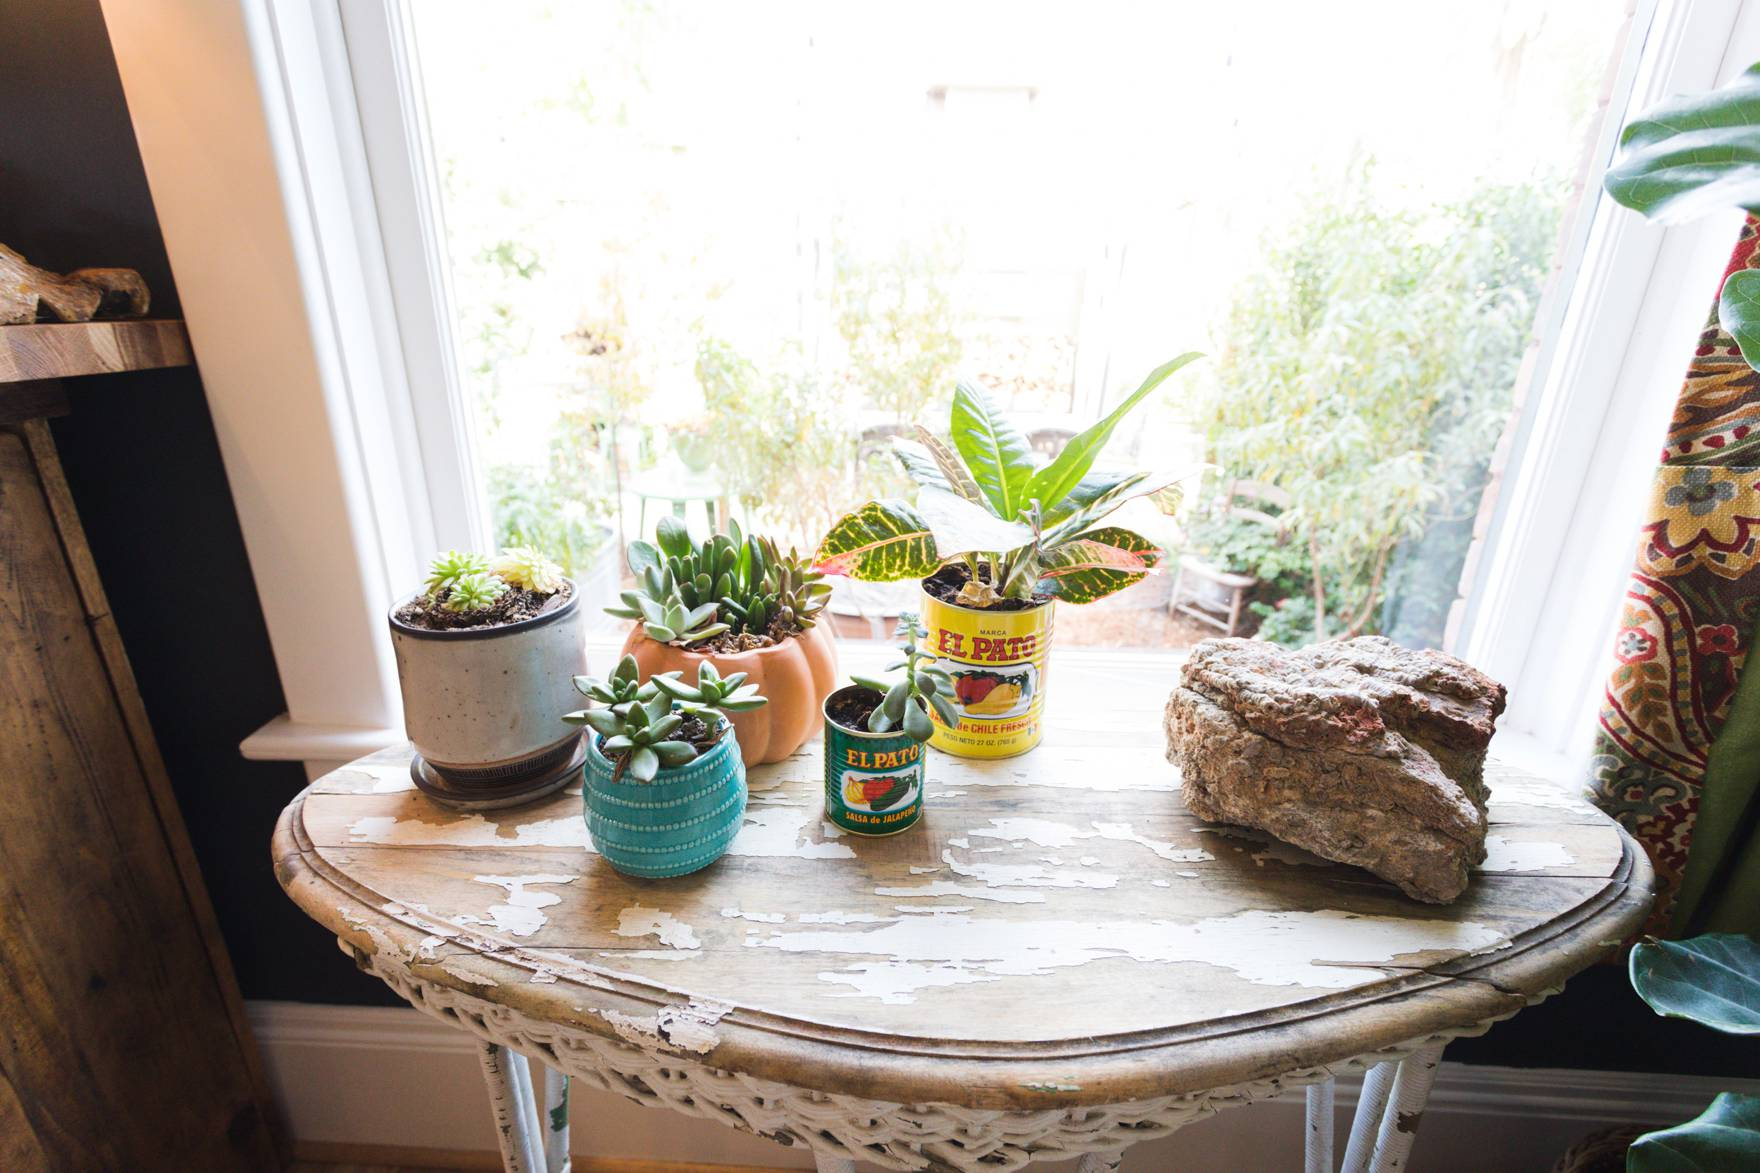 Home Tour of Boho Farm and Home in Downtown Phoenix - cottage brick style home from 1903 living room to kitchen details succulents in old sauce jars